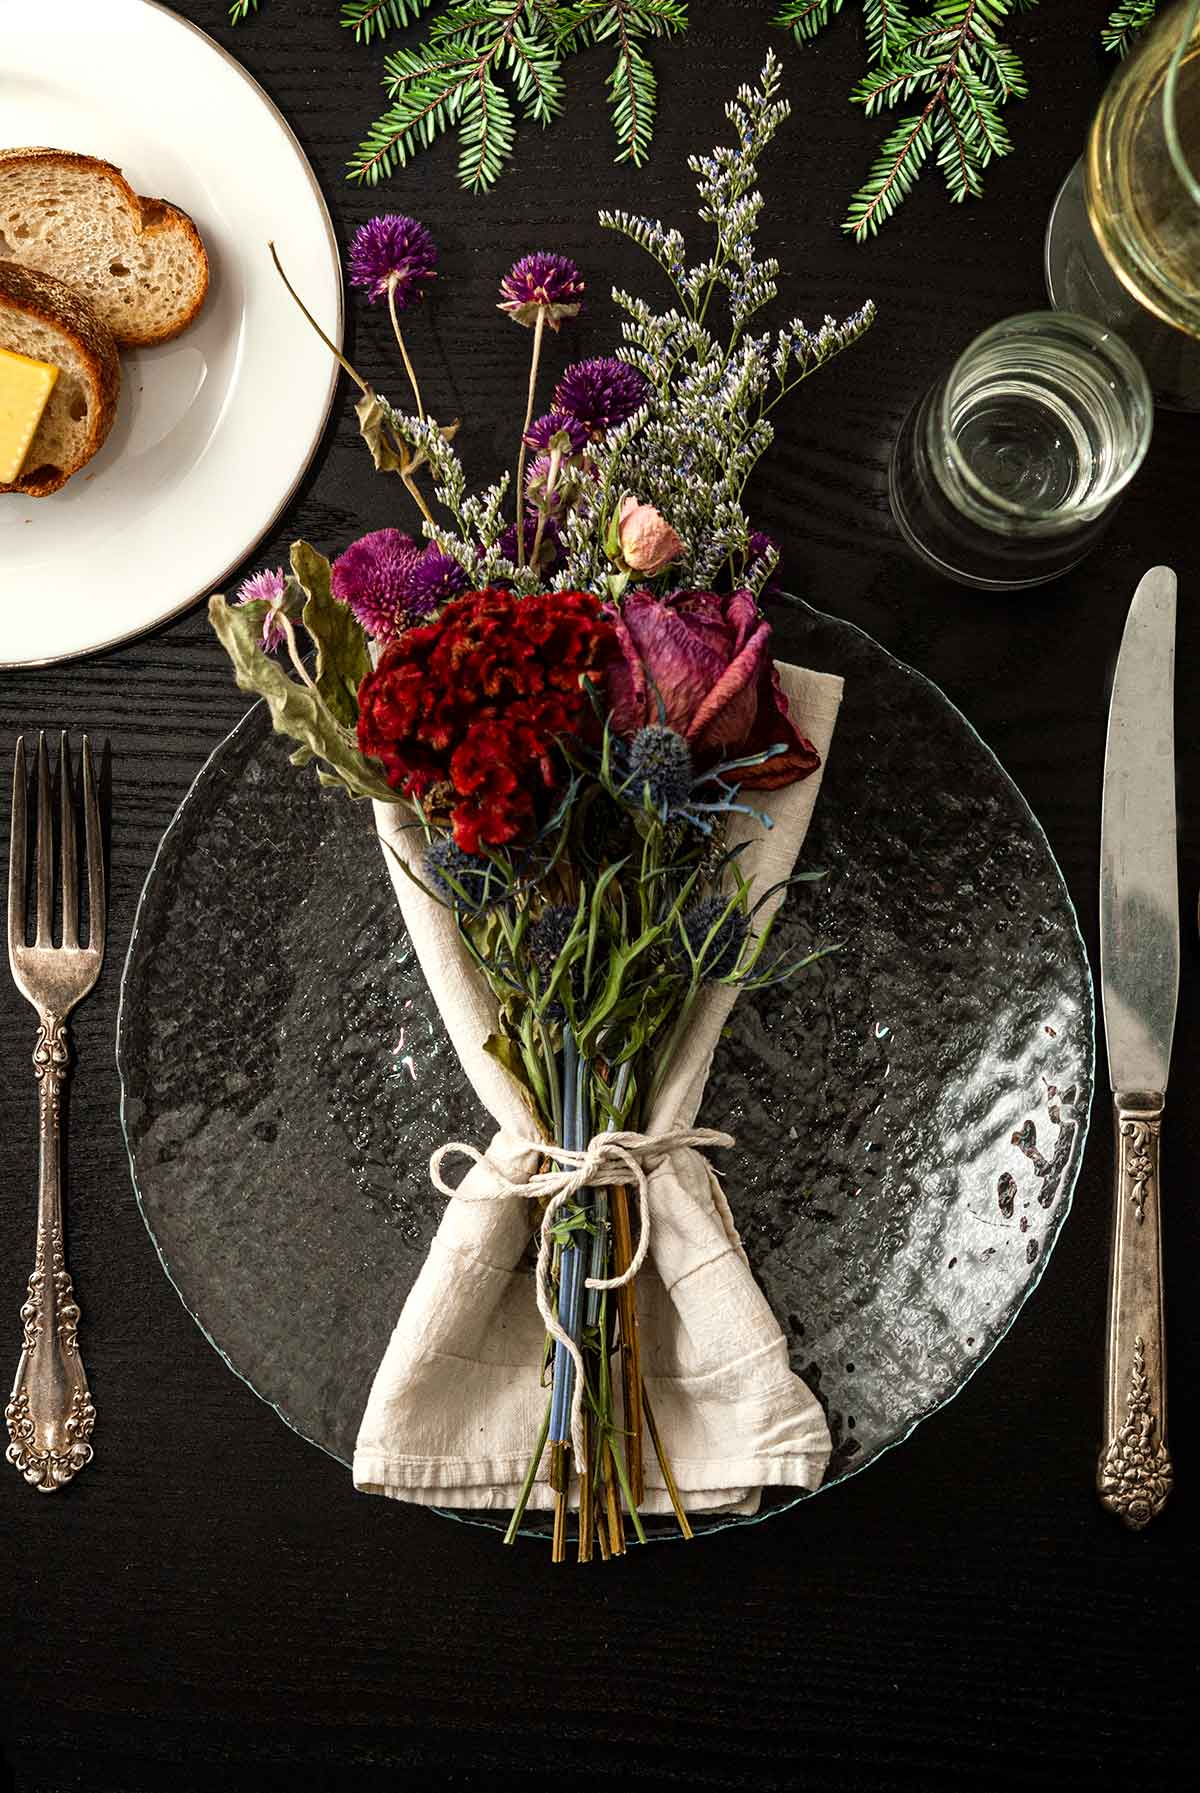 A bouquet of flowers in a napkin on a plate on a table with holiday greenery, a plate of bread, silverware and glassware.